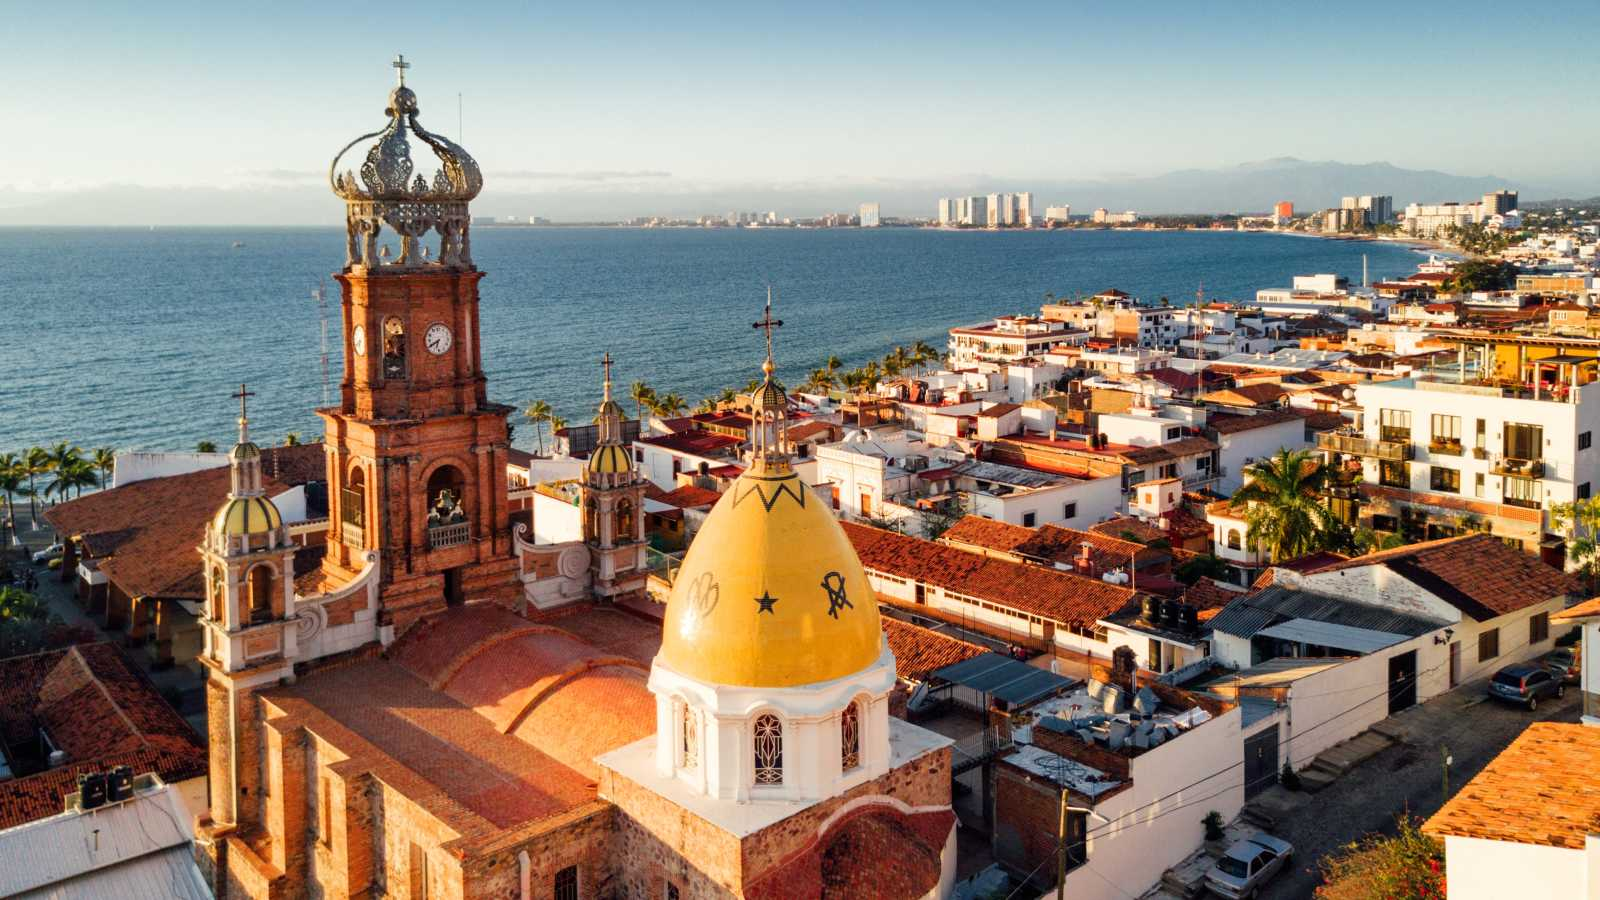 Church Parish of Our Lady of Guadalupe in Puerto Vallarta Mexico